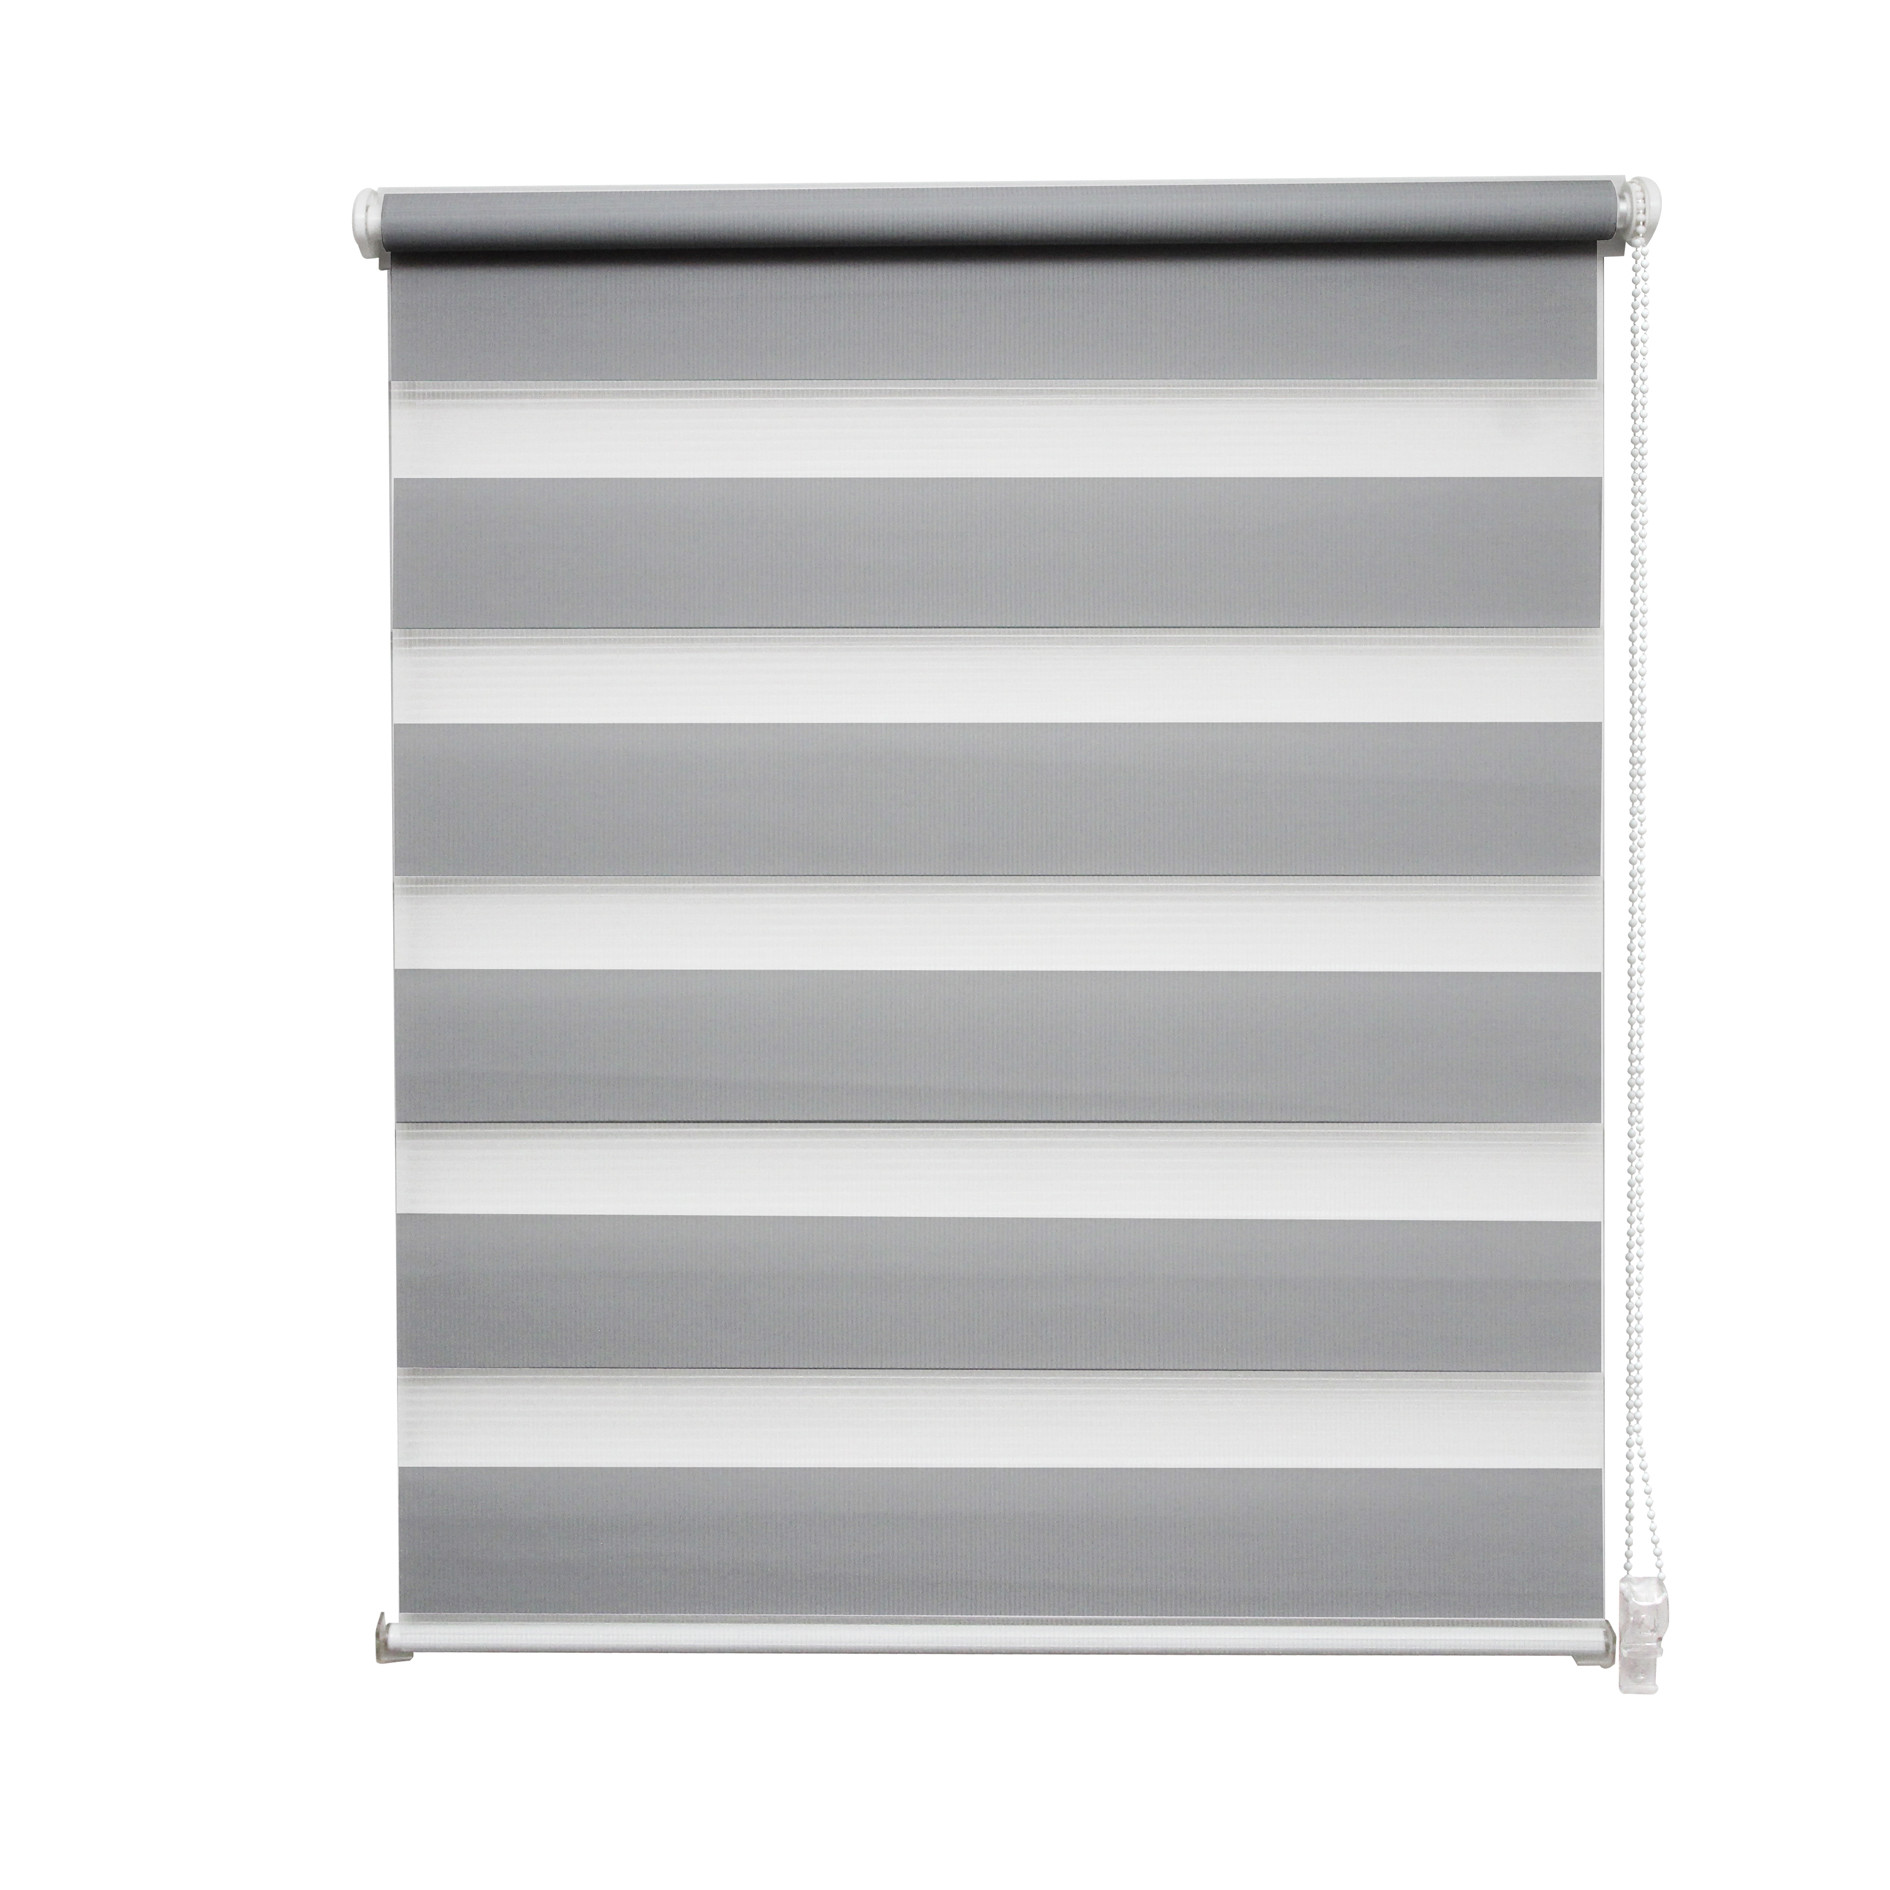 Excellent Menards Window Blinds for Best Window Blind Ideas: Menards Landscape Rock | Menards Window Blinds | Outdoor Blinds For Patio